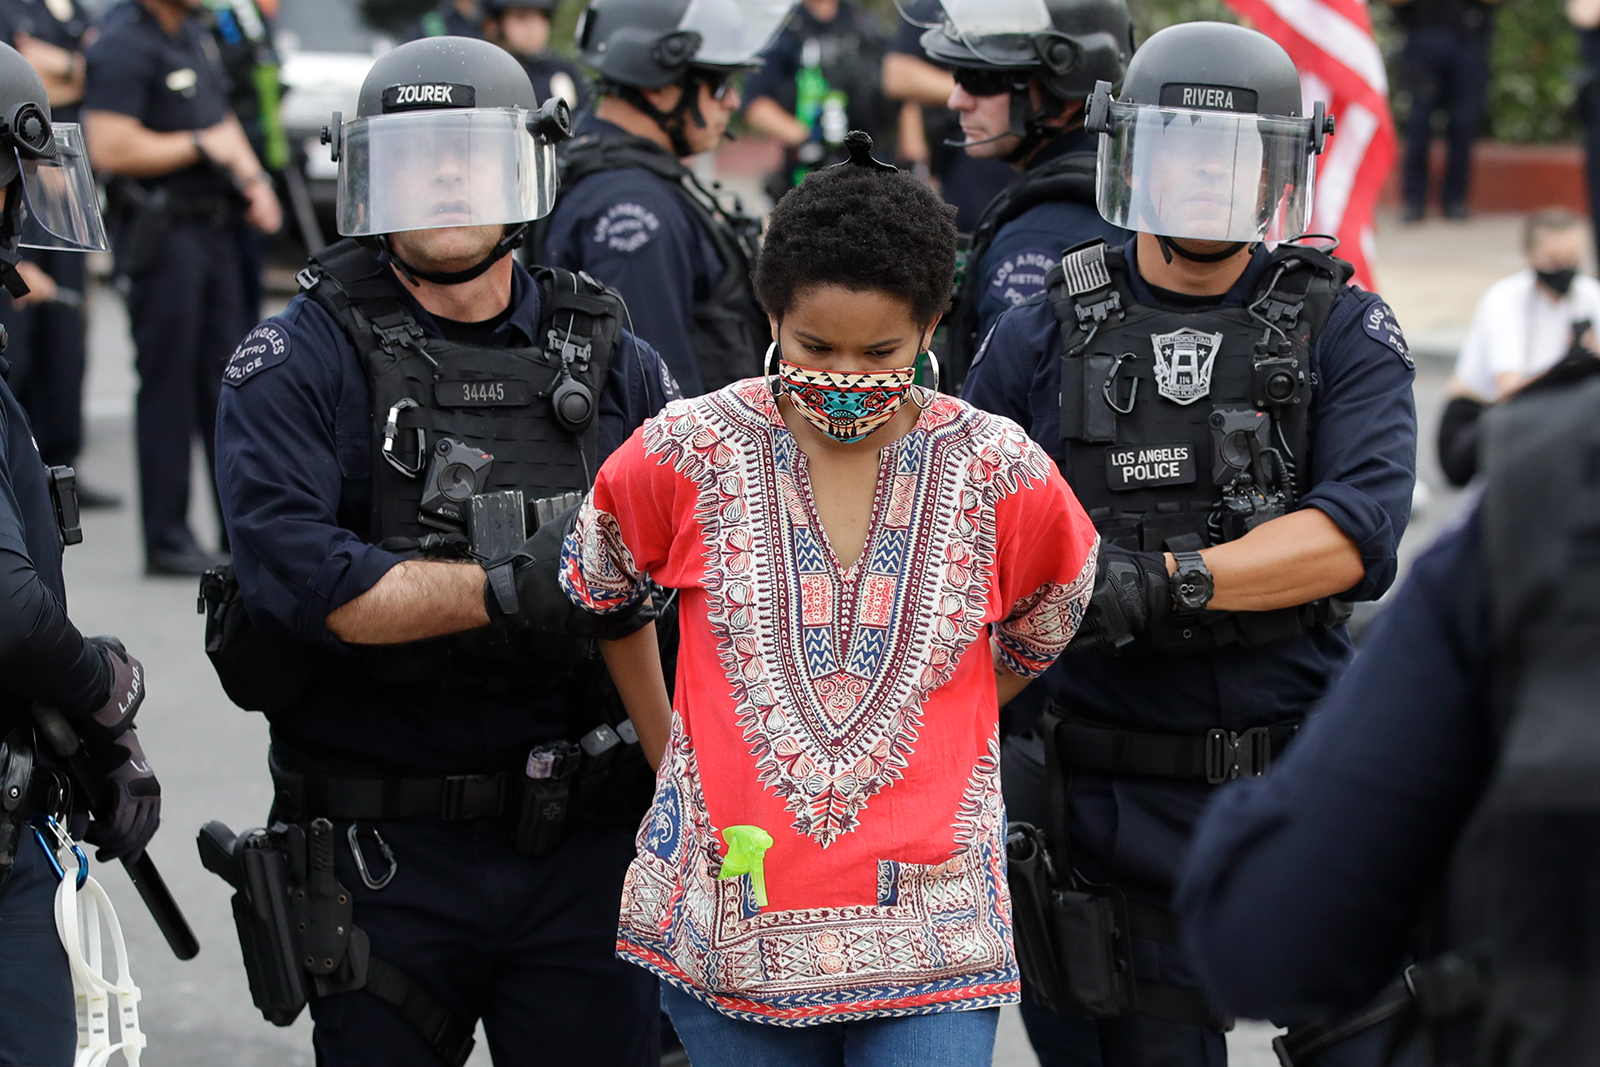 A protester is arrested for violating a curfew on Monday, June 1, in the Hollywood area of Los Angeles.